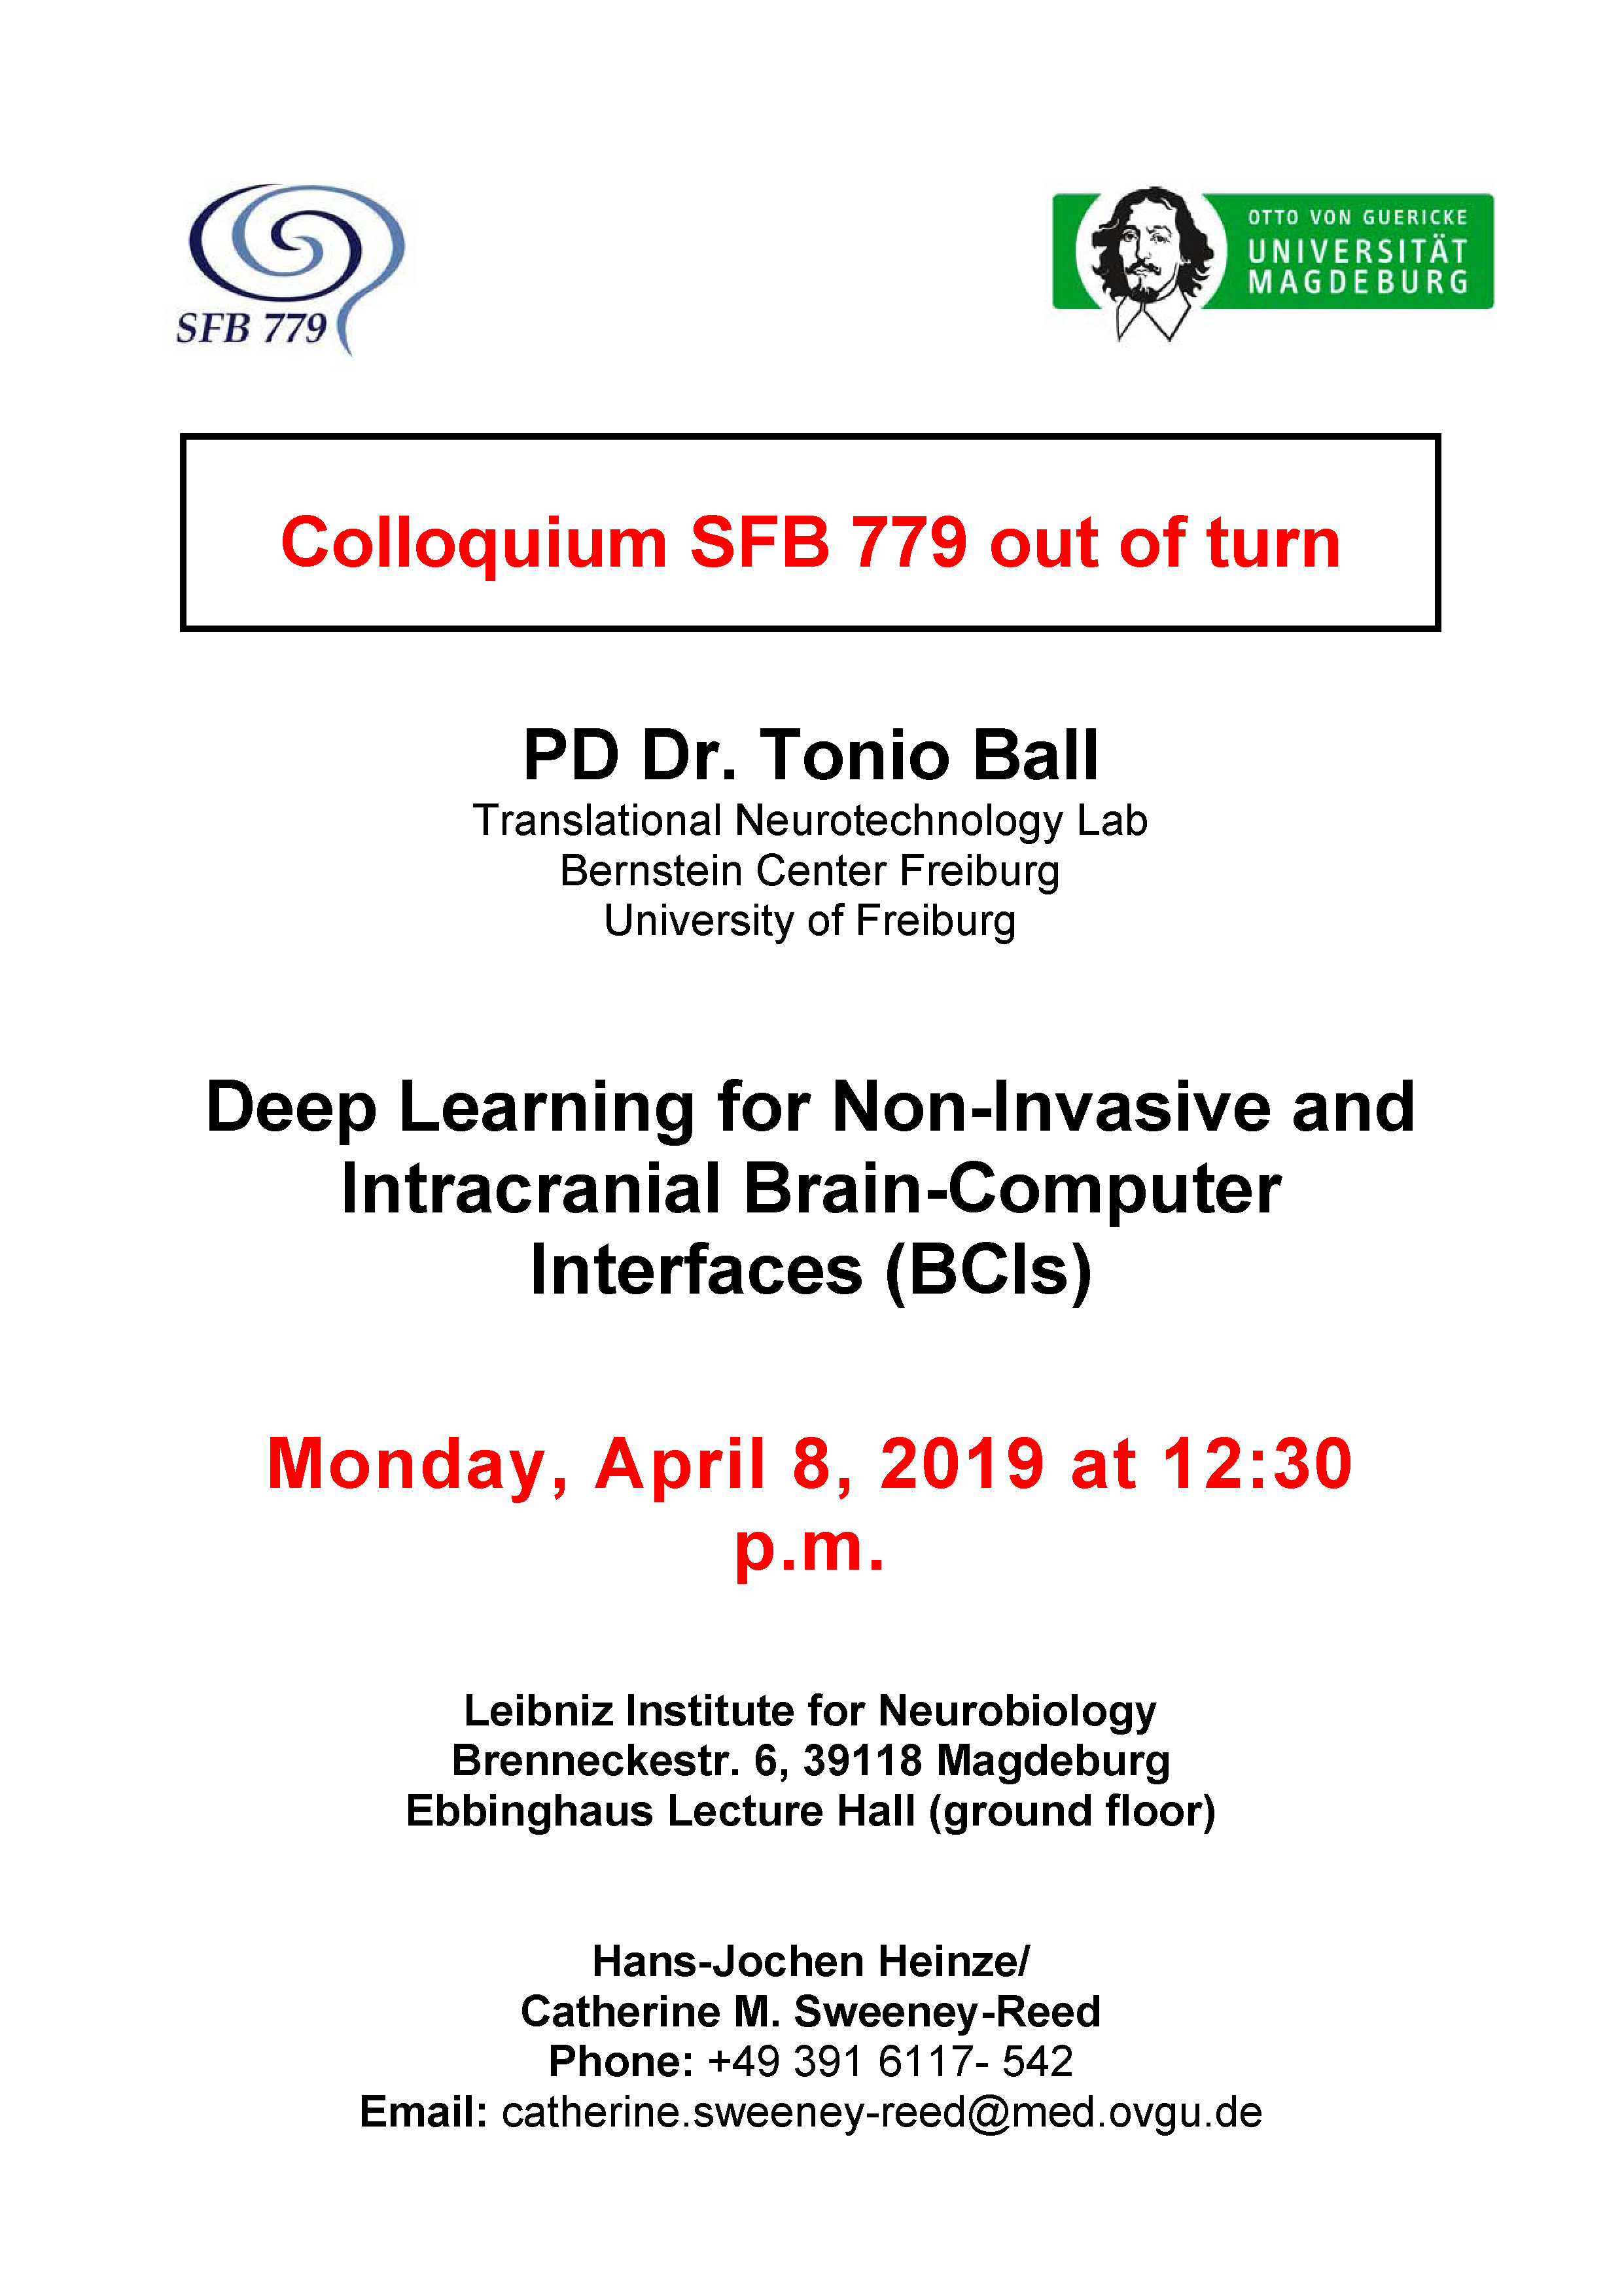 CRC 779 Colloquium: Deep Learning for Non-Invasive and Intracranial Brain-Computer Interfaces (BCIs) @ Ebbinghaus Lecture Hall, Leibniz Institute for Neurobiology